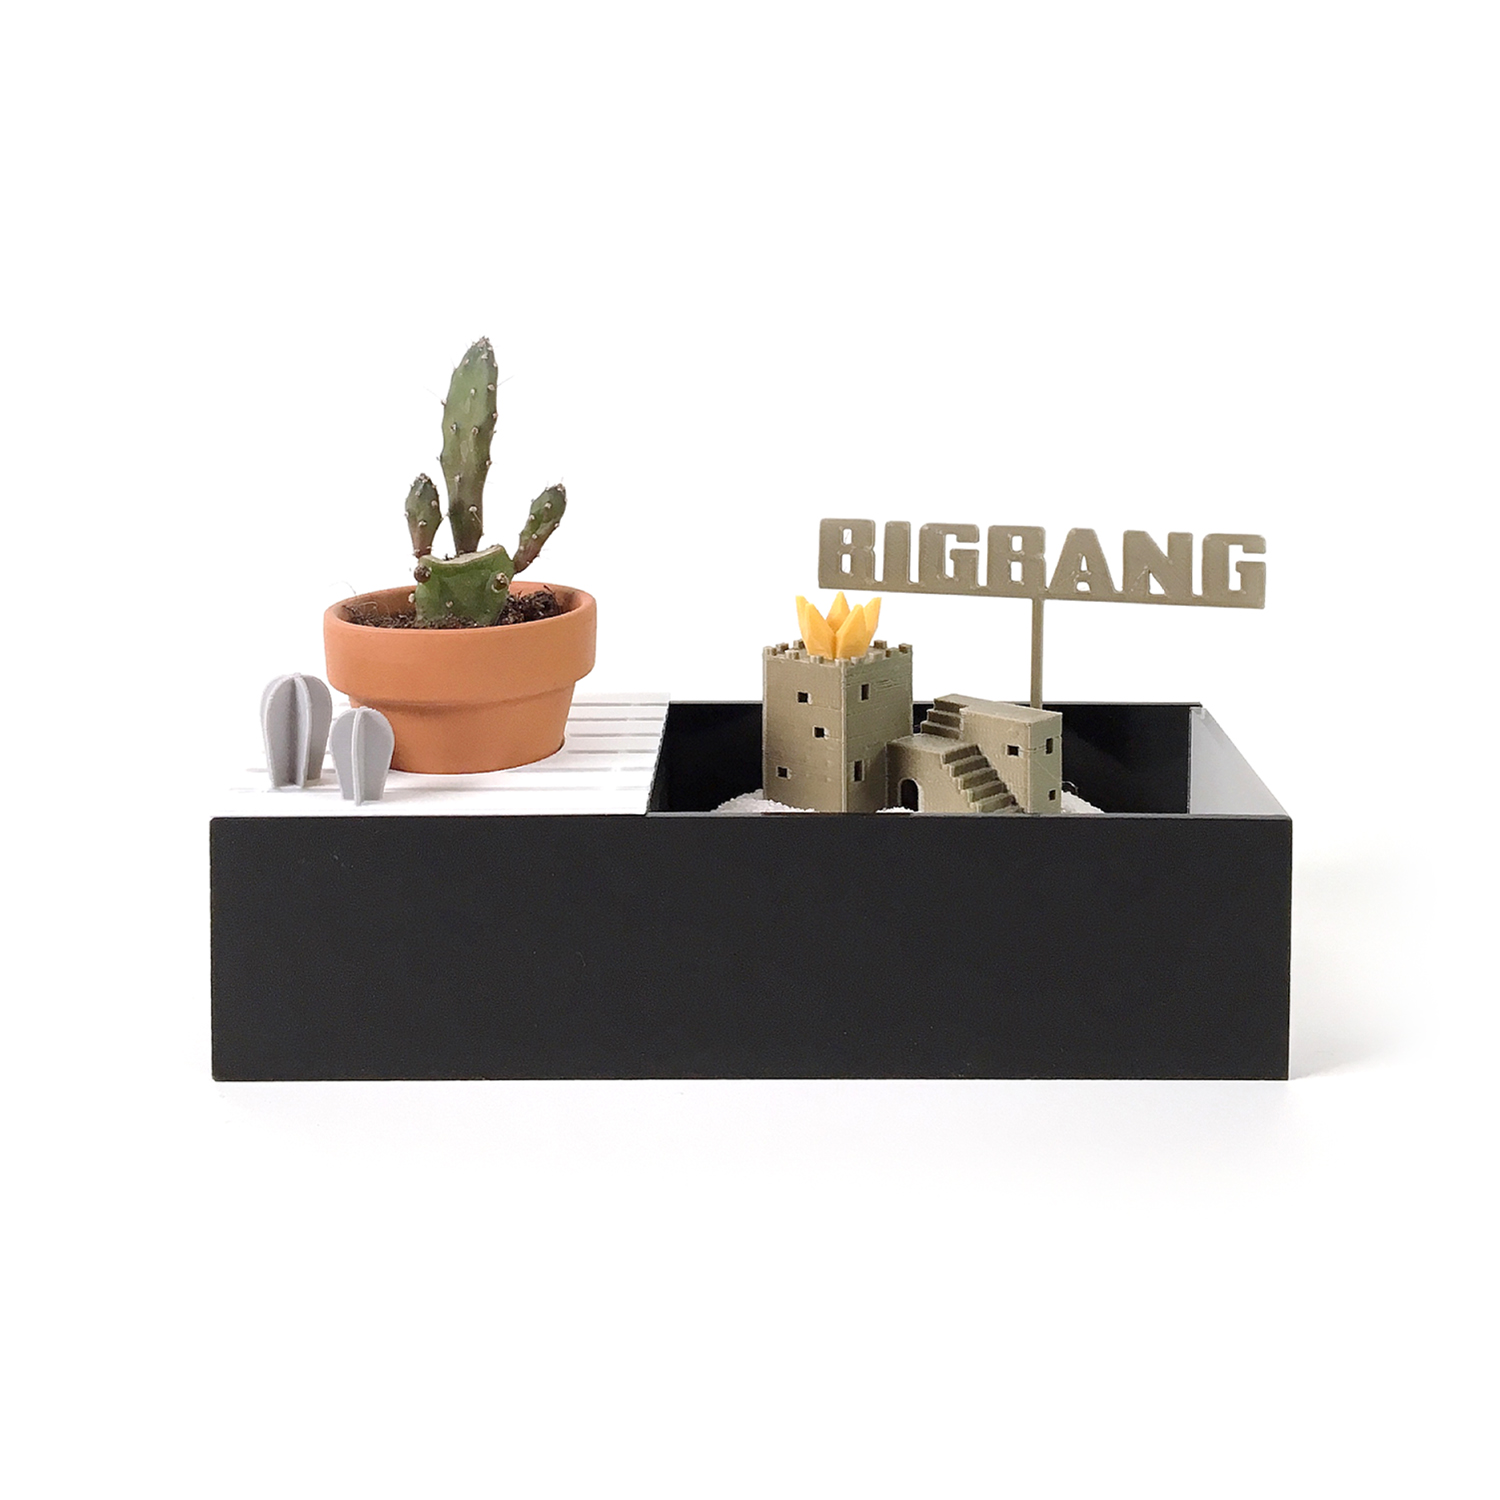 [LIVESLOW] BIGBANG PLANTS KIT with jammm